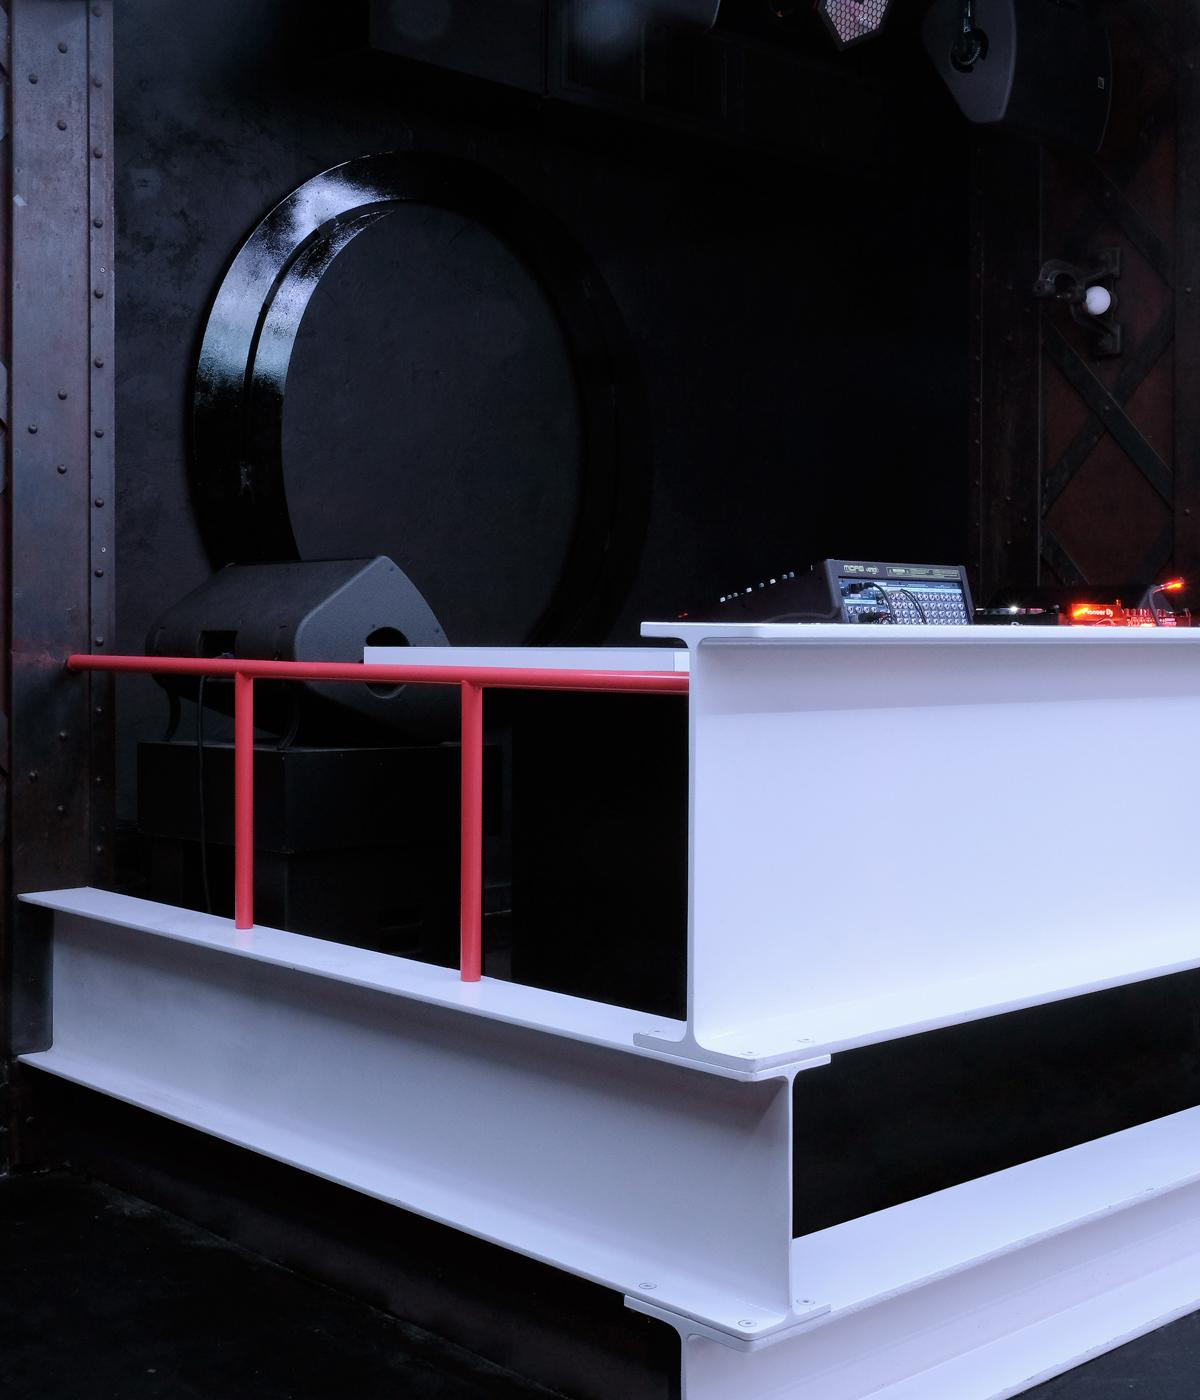 New DJ booth design, in Badaboum nighclub, Paris